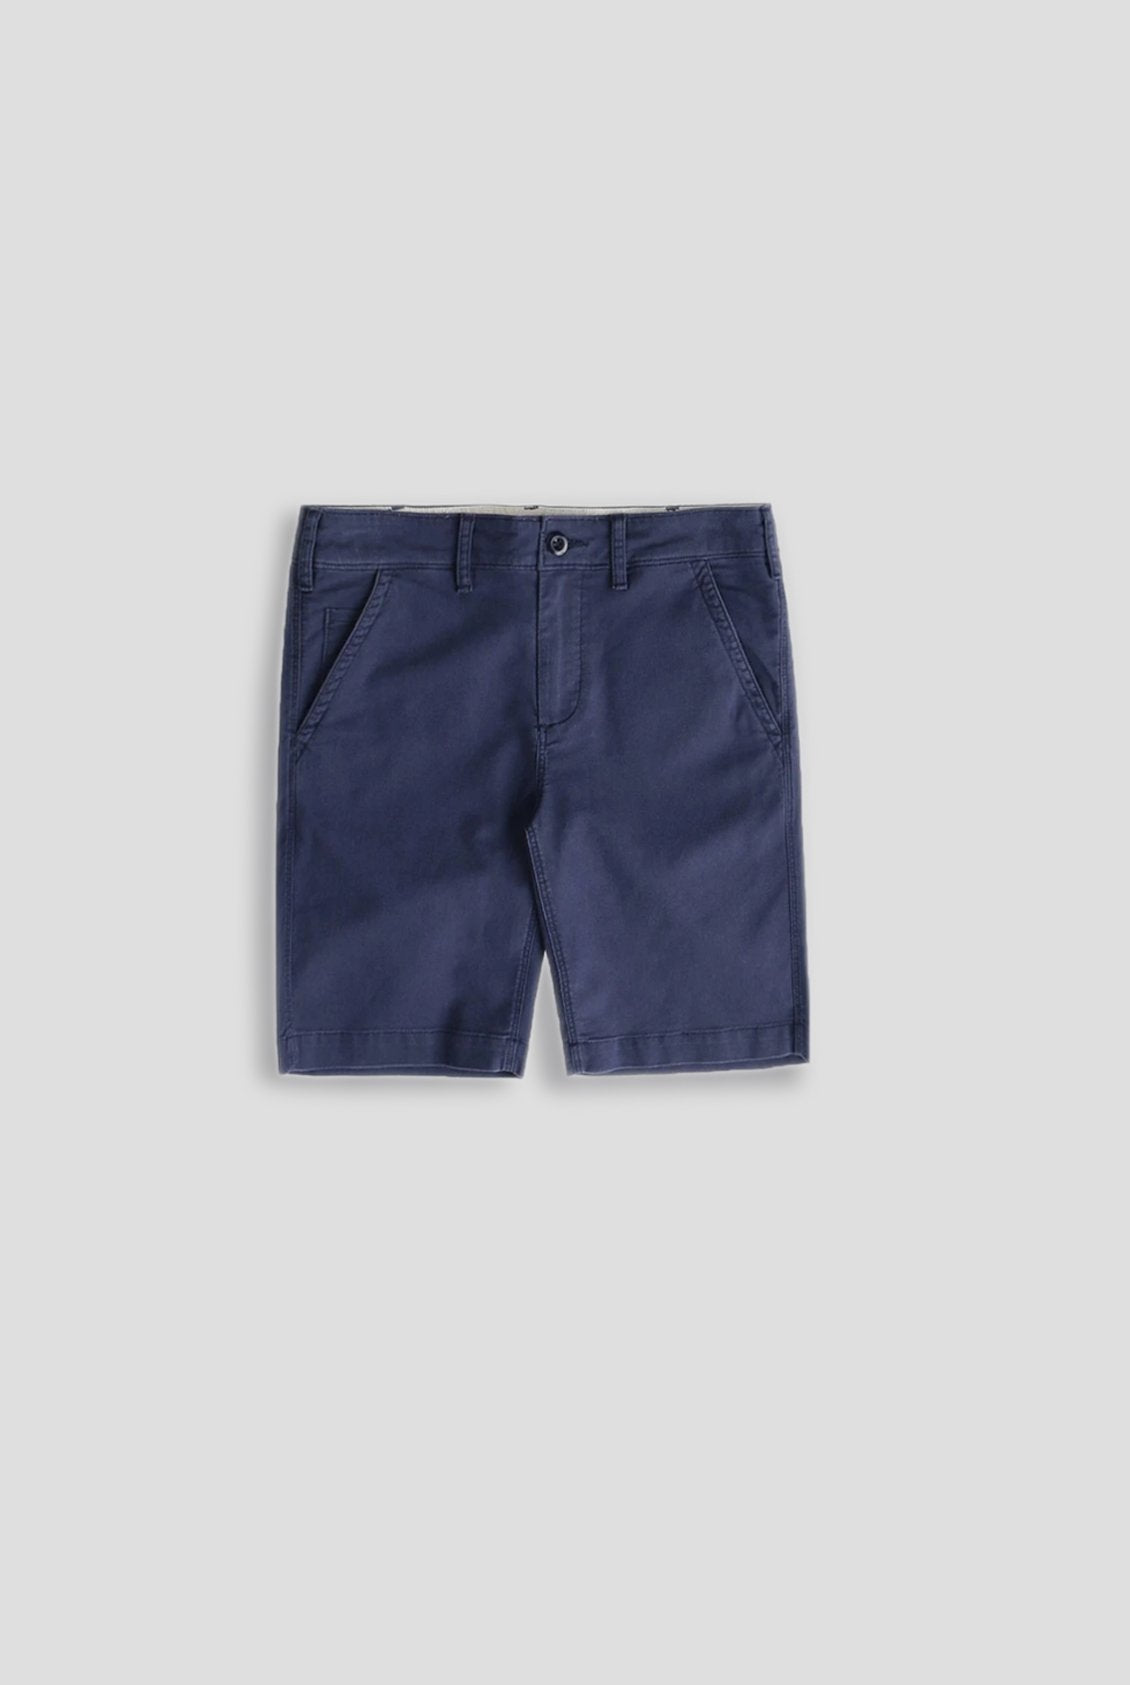 washed-navy